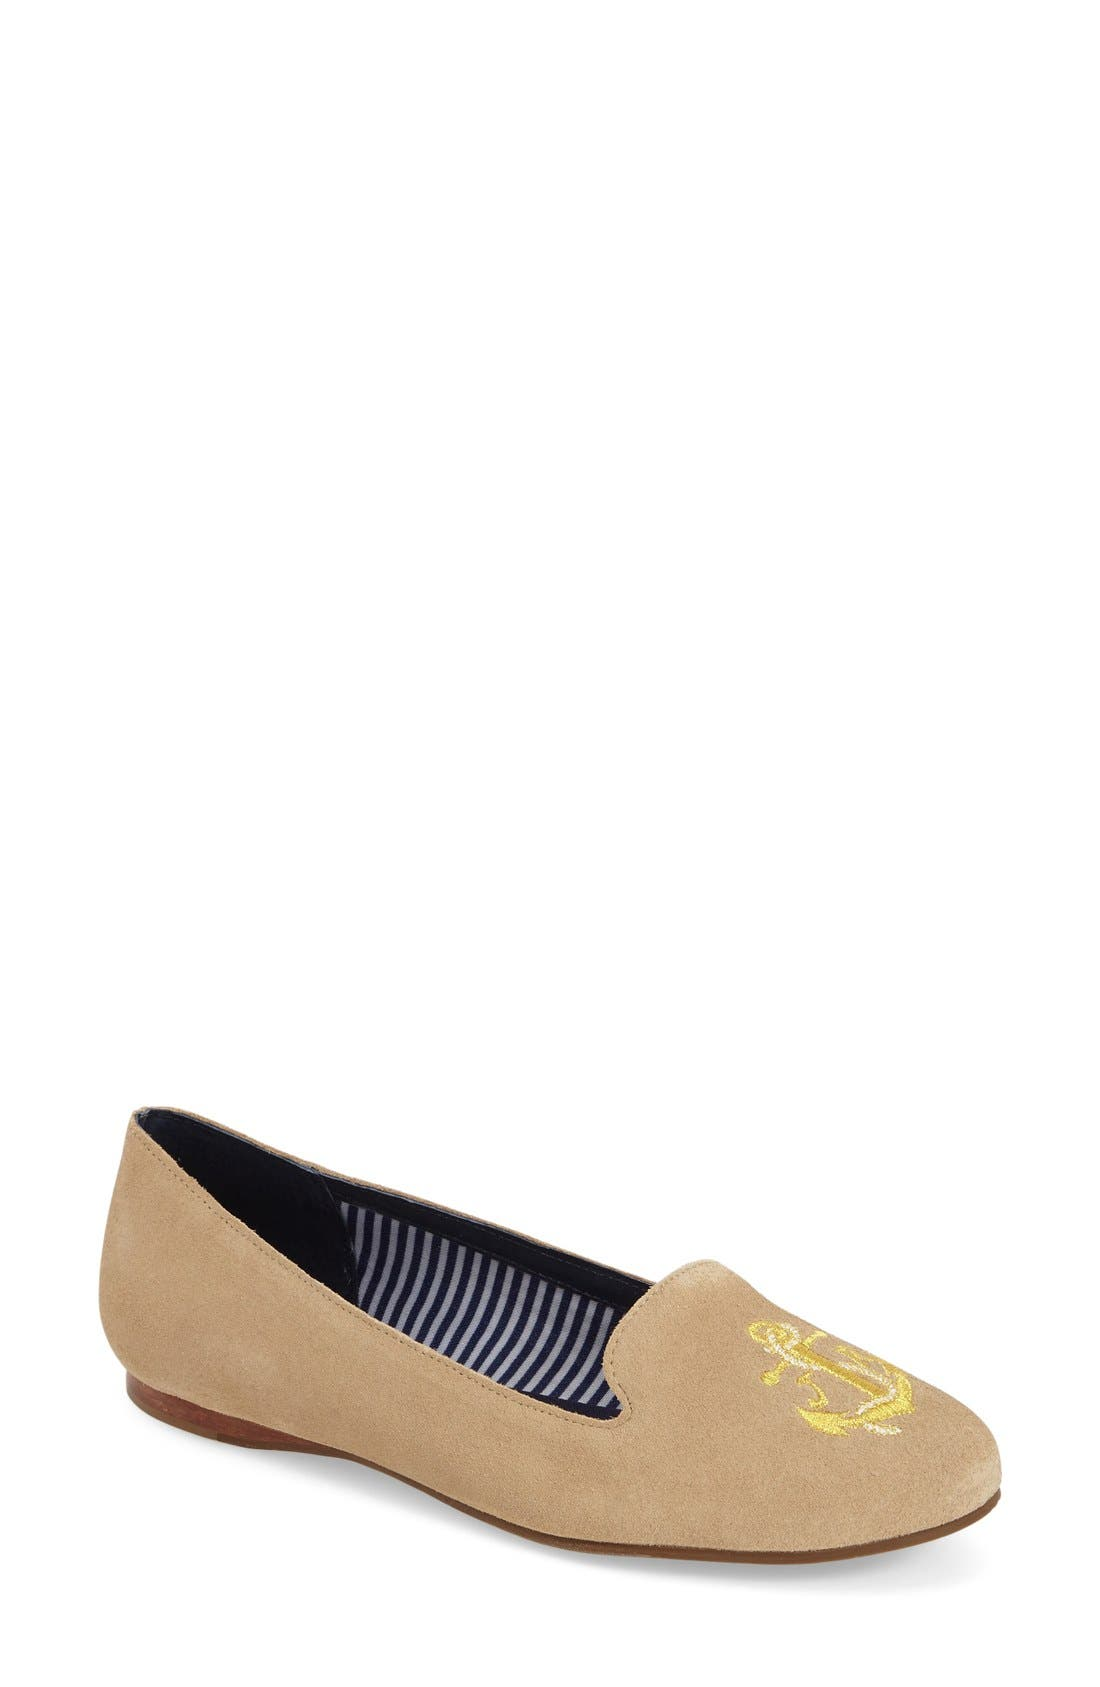 Main Image - Jack Rogers 'Reese' Loafer (Women)